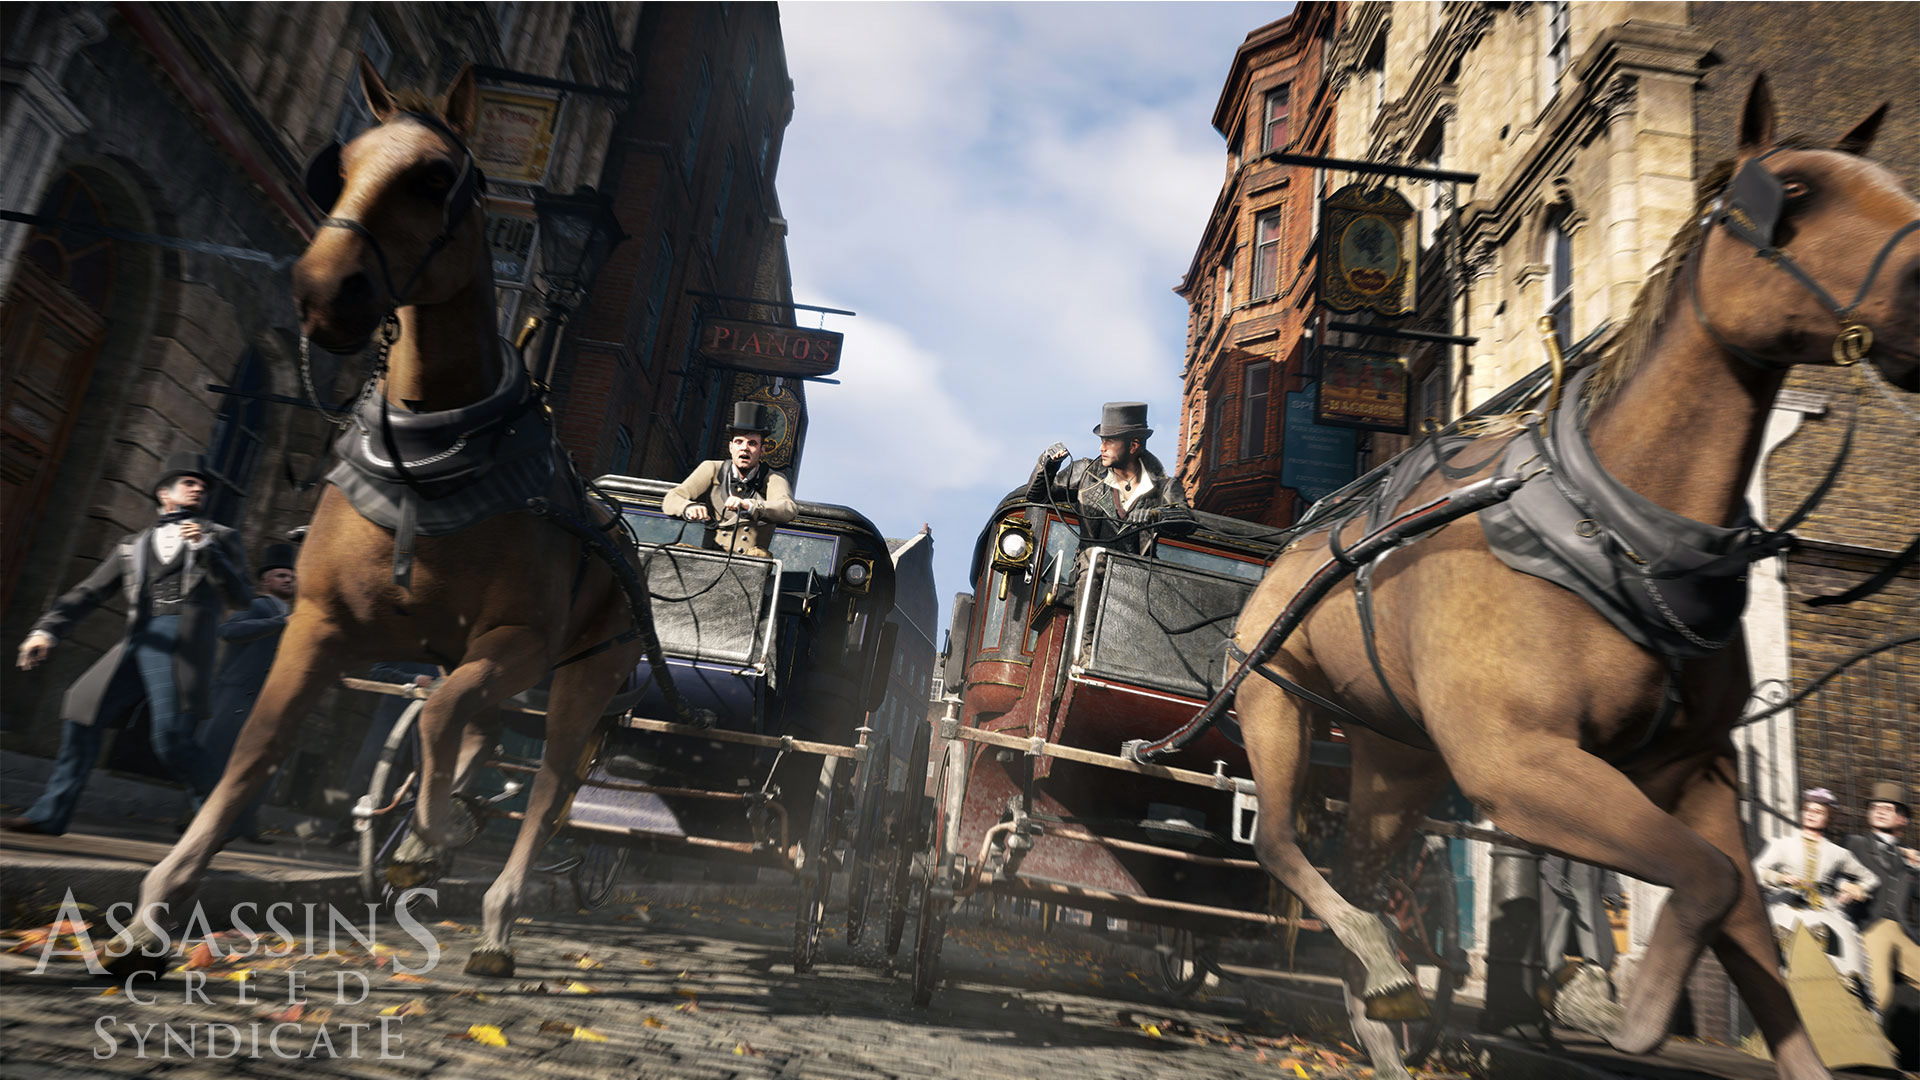 Ubisoft wants the public to help playtest Assassin's Creed Syndicate, give feedback